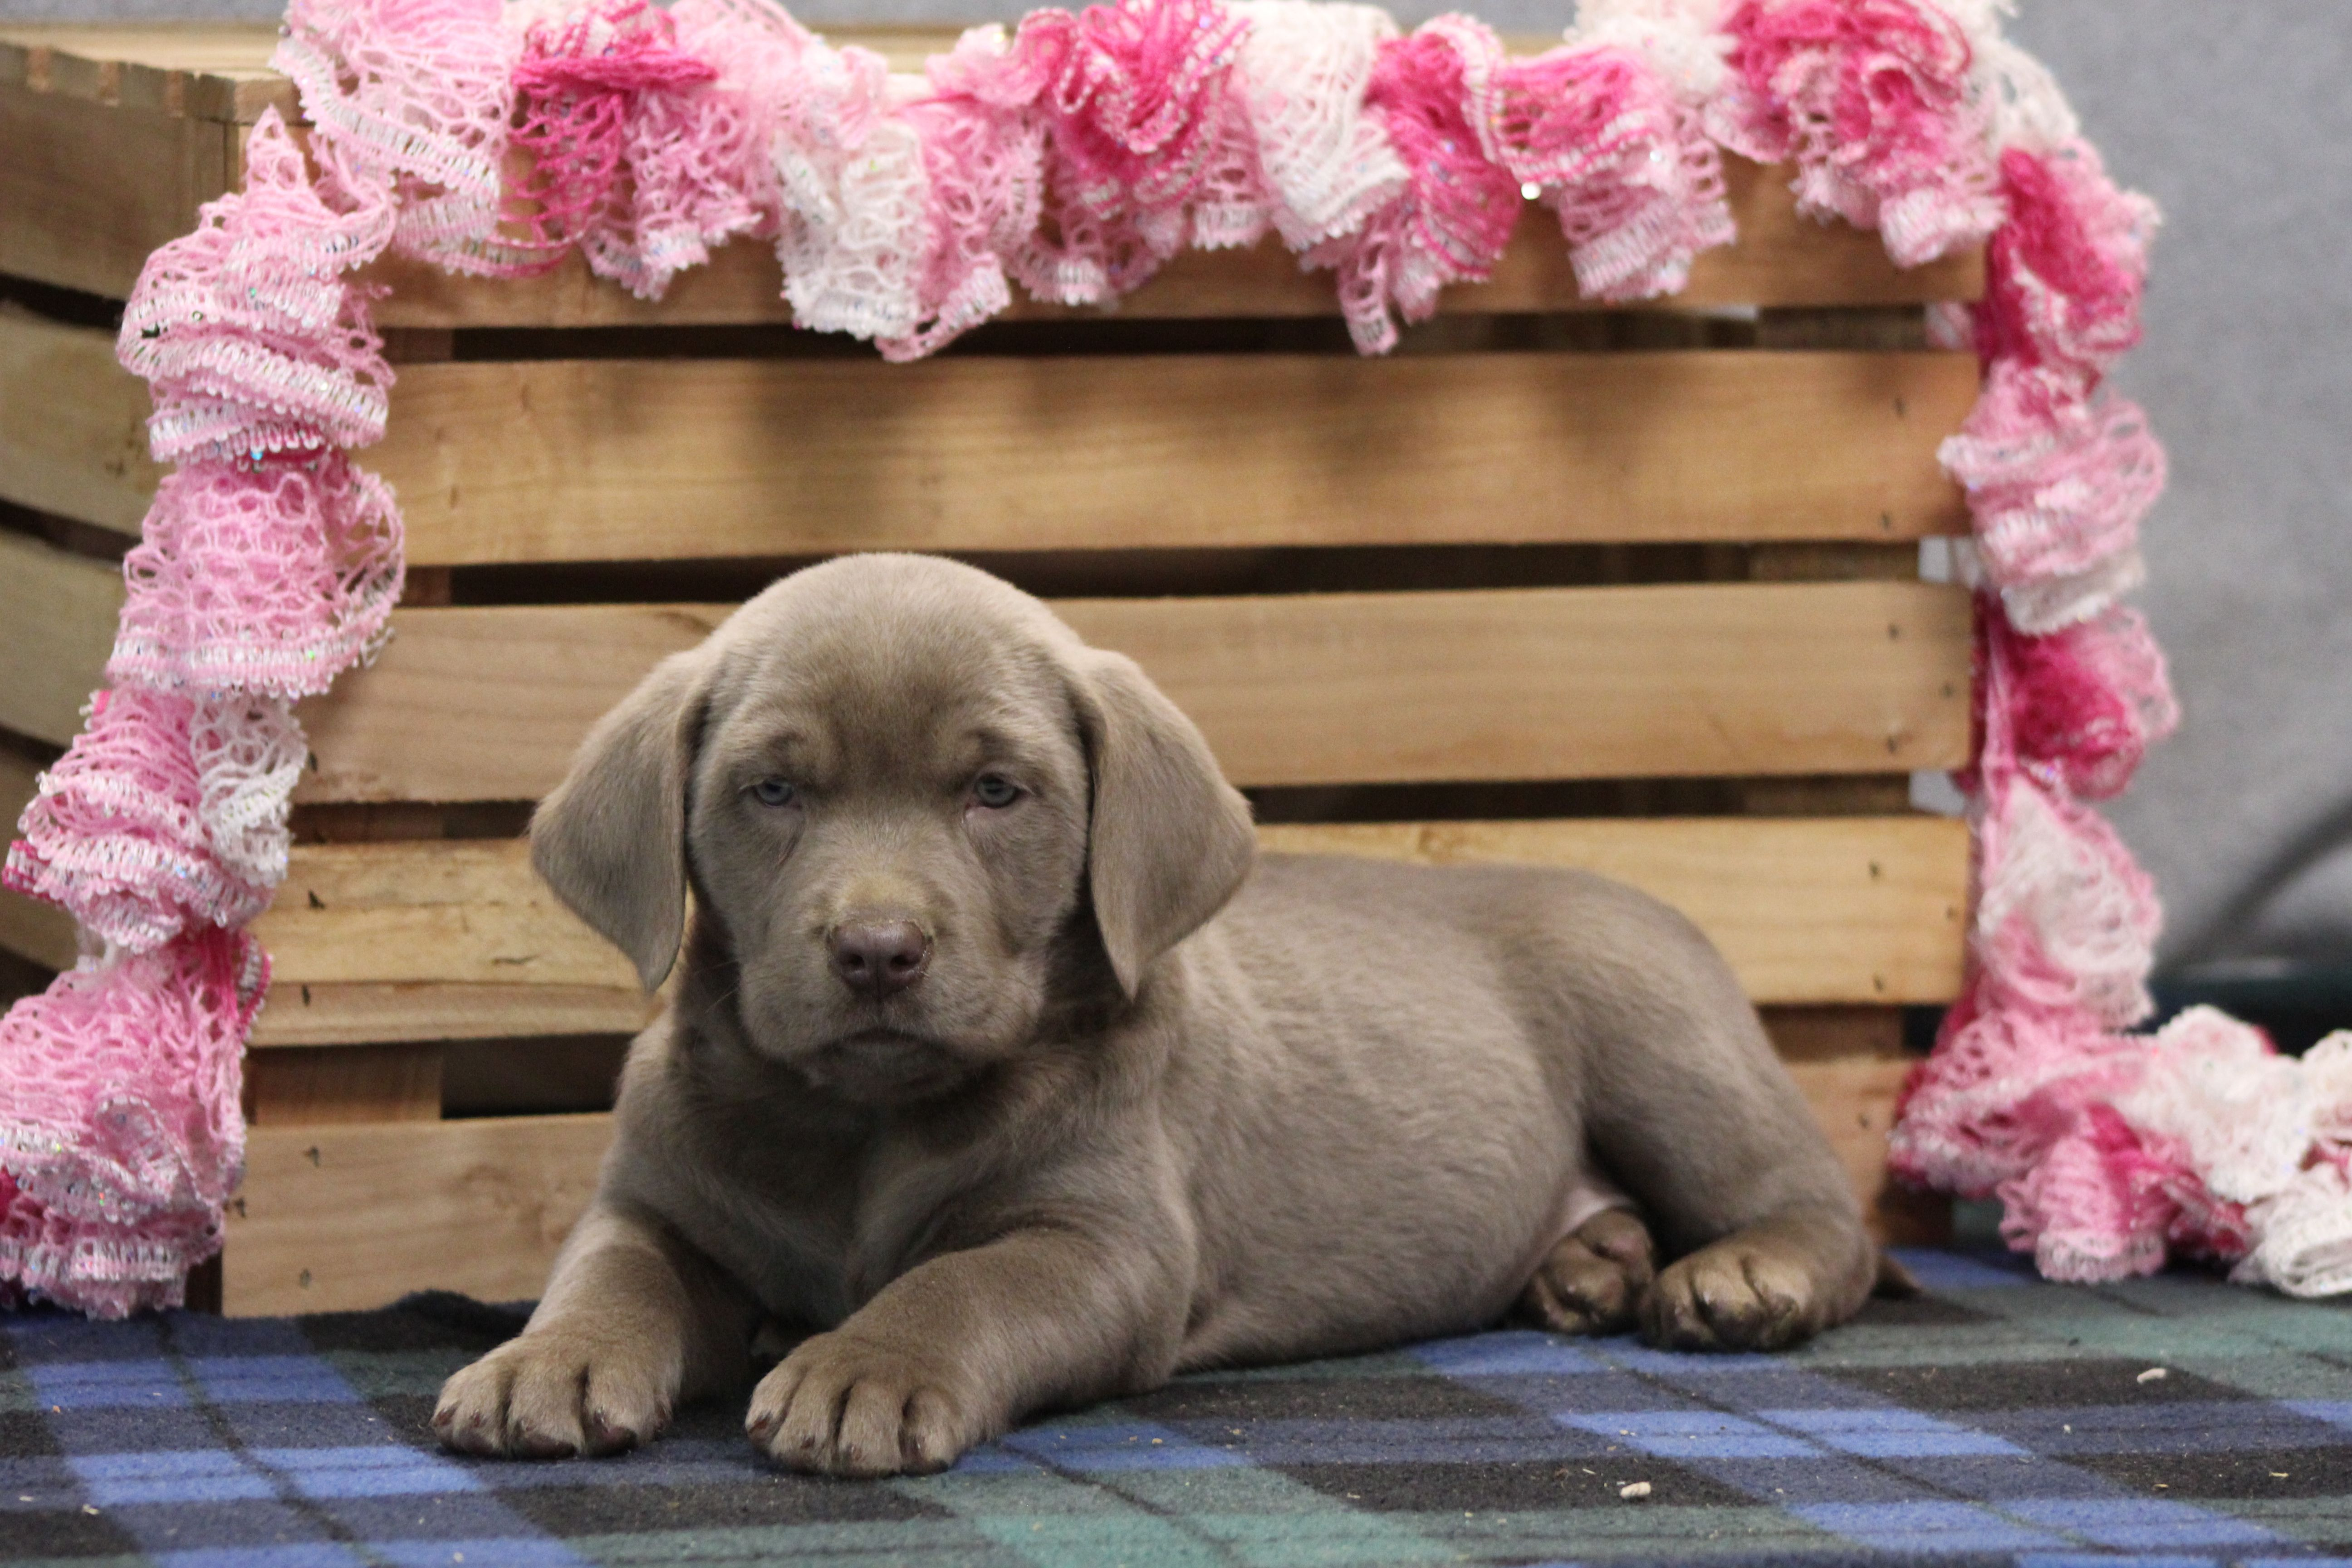 Mia Designer Breed Large Puppie For Sale At New Haven Indiana Vip Puppies In 2020 Puppy Finder Puppies Puppy Adoption